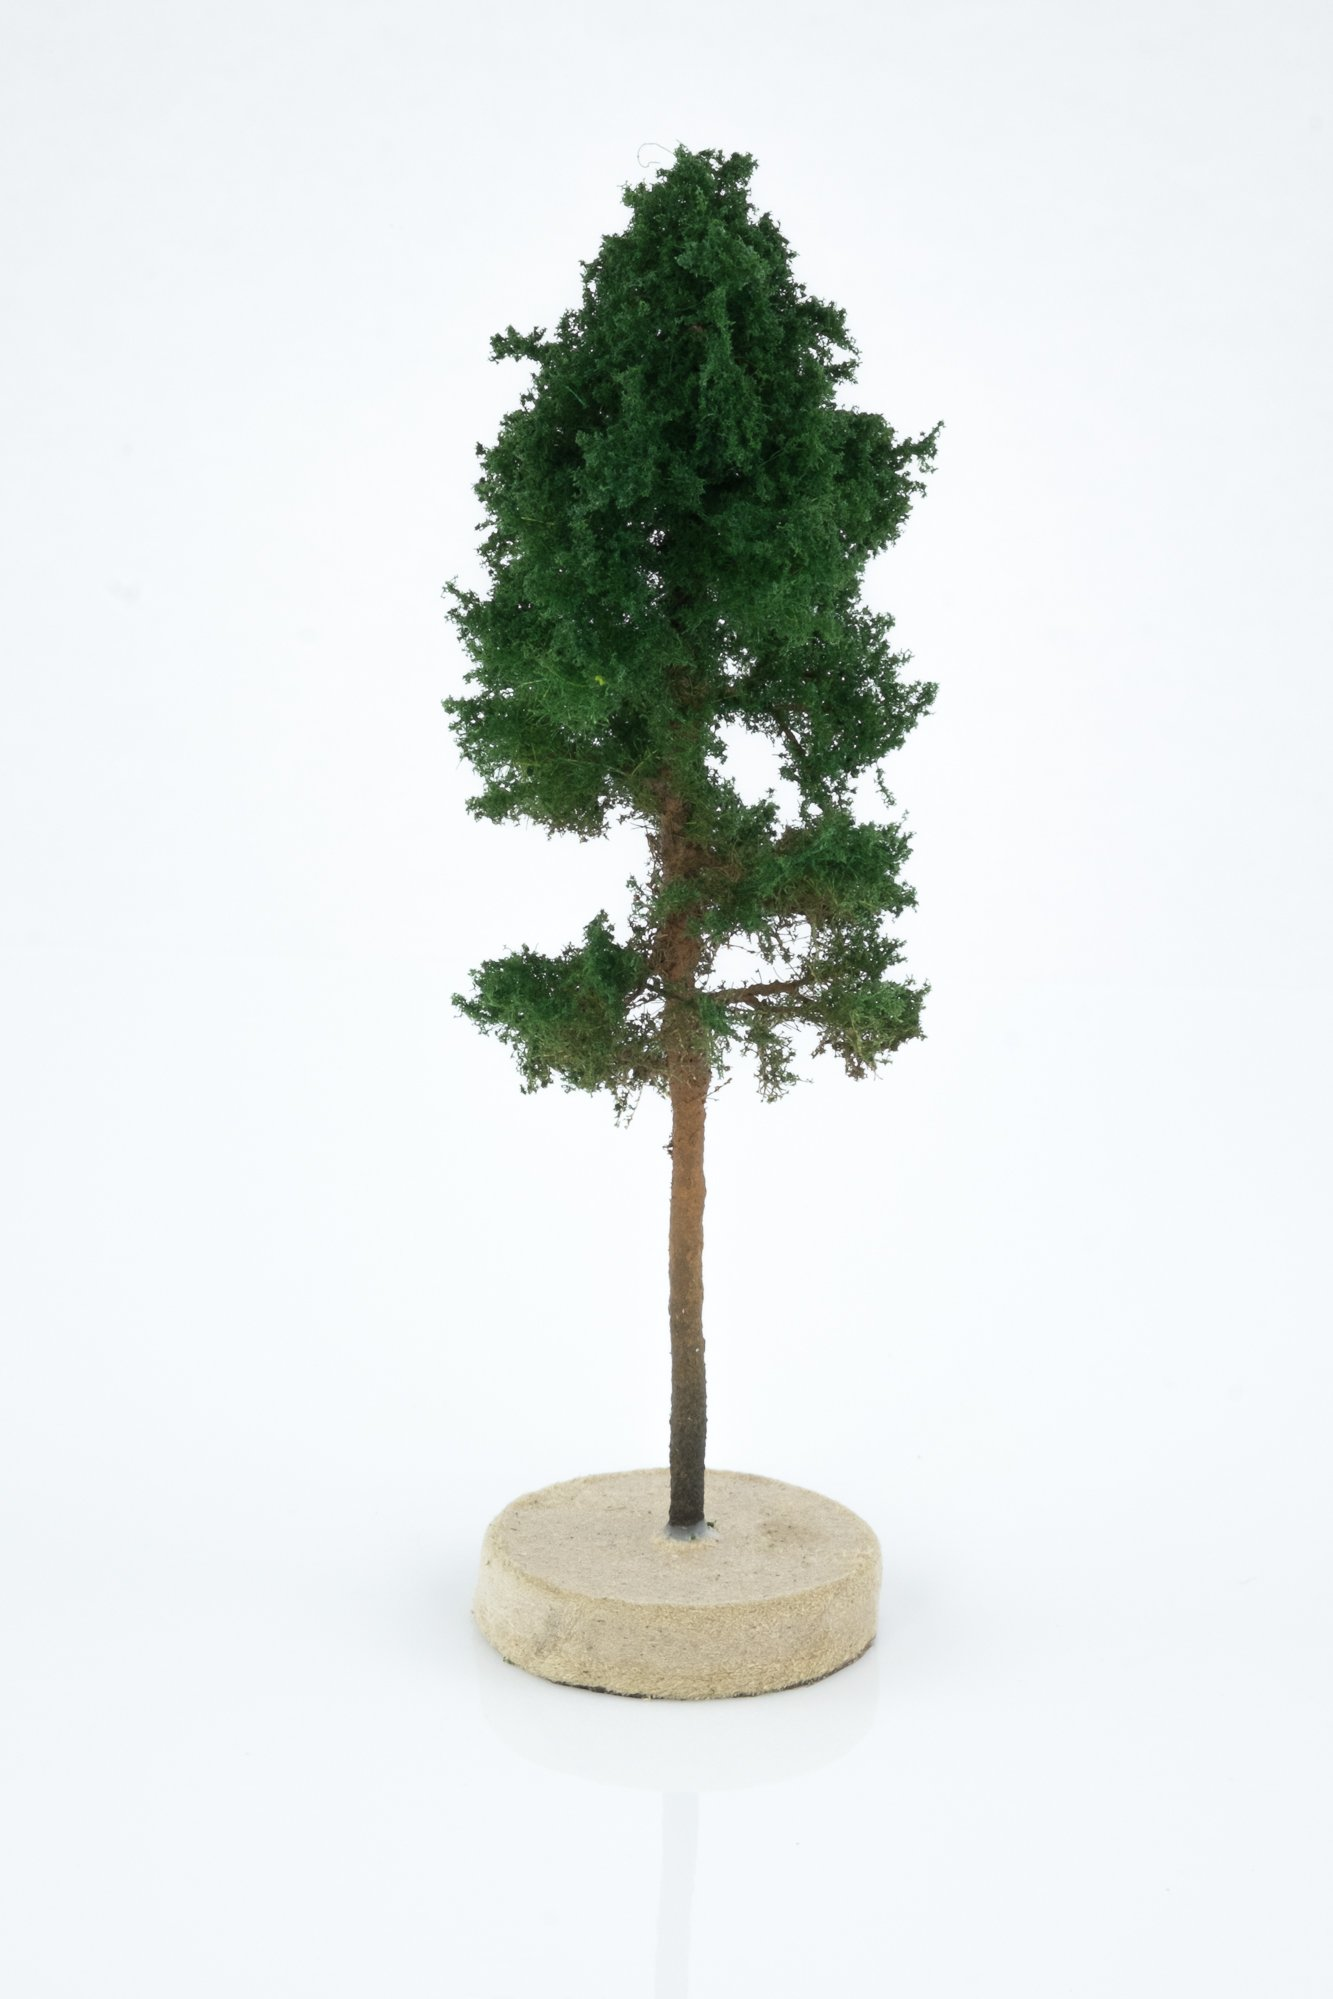 Hand-made, green, pine tree model. Size between 8 and 12 cm. Made from high quality model supplies by Primo Models.